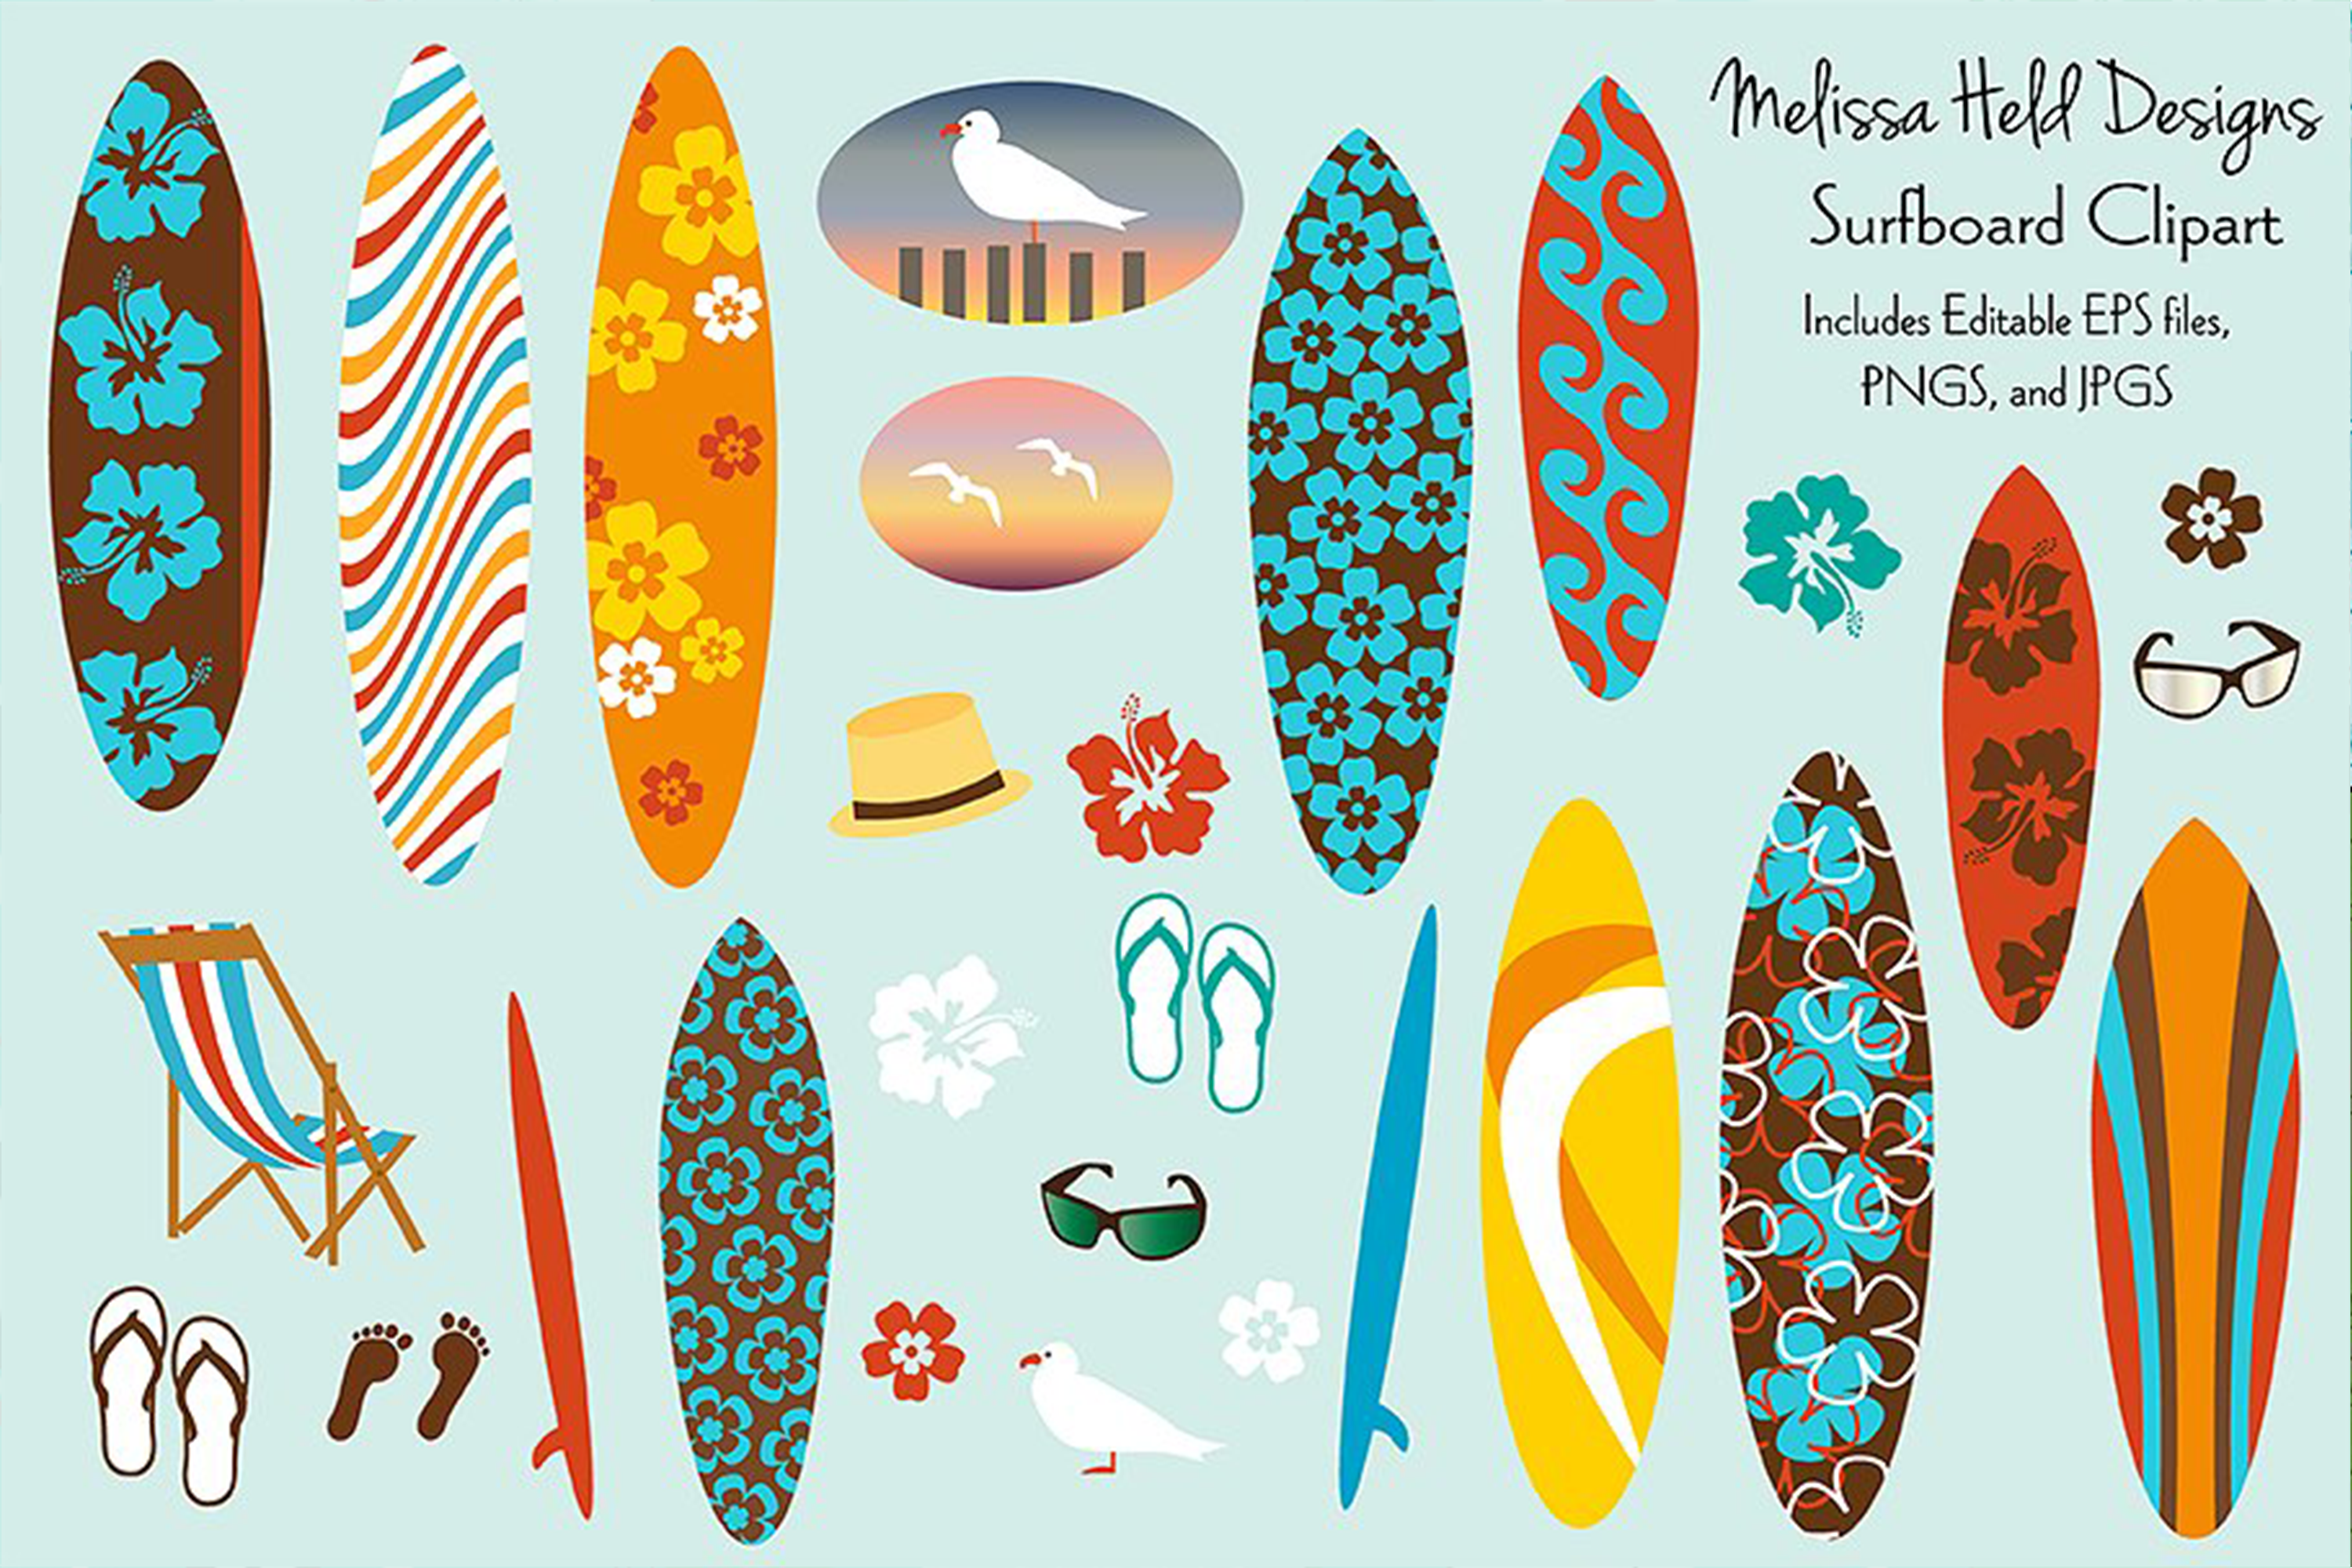 Surfboard Clipart example image 1